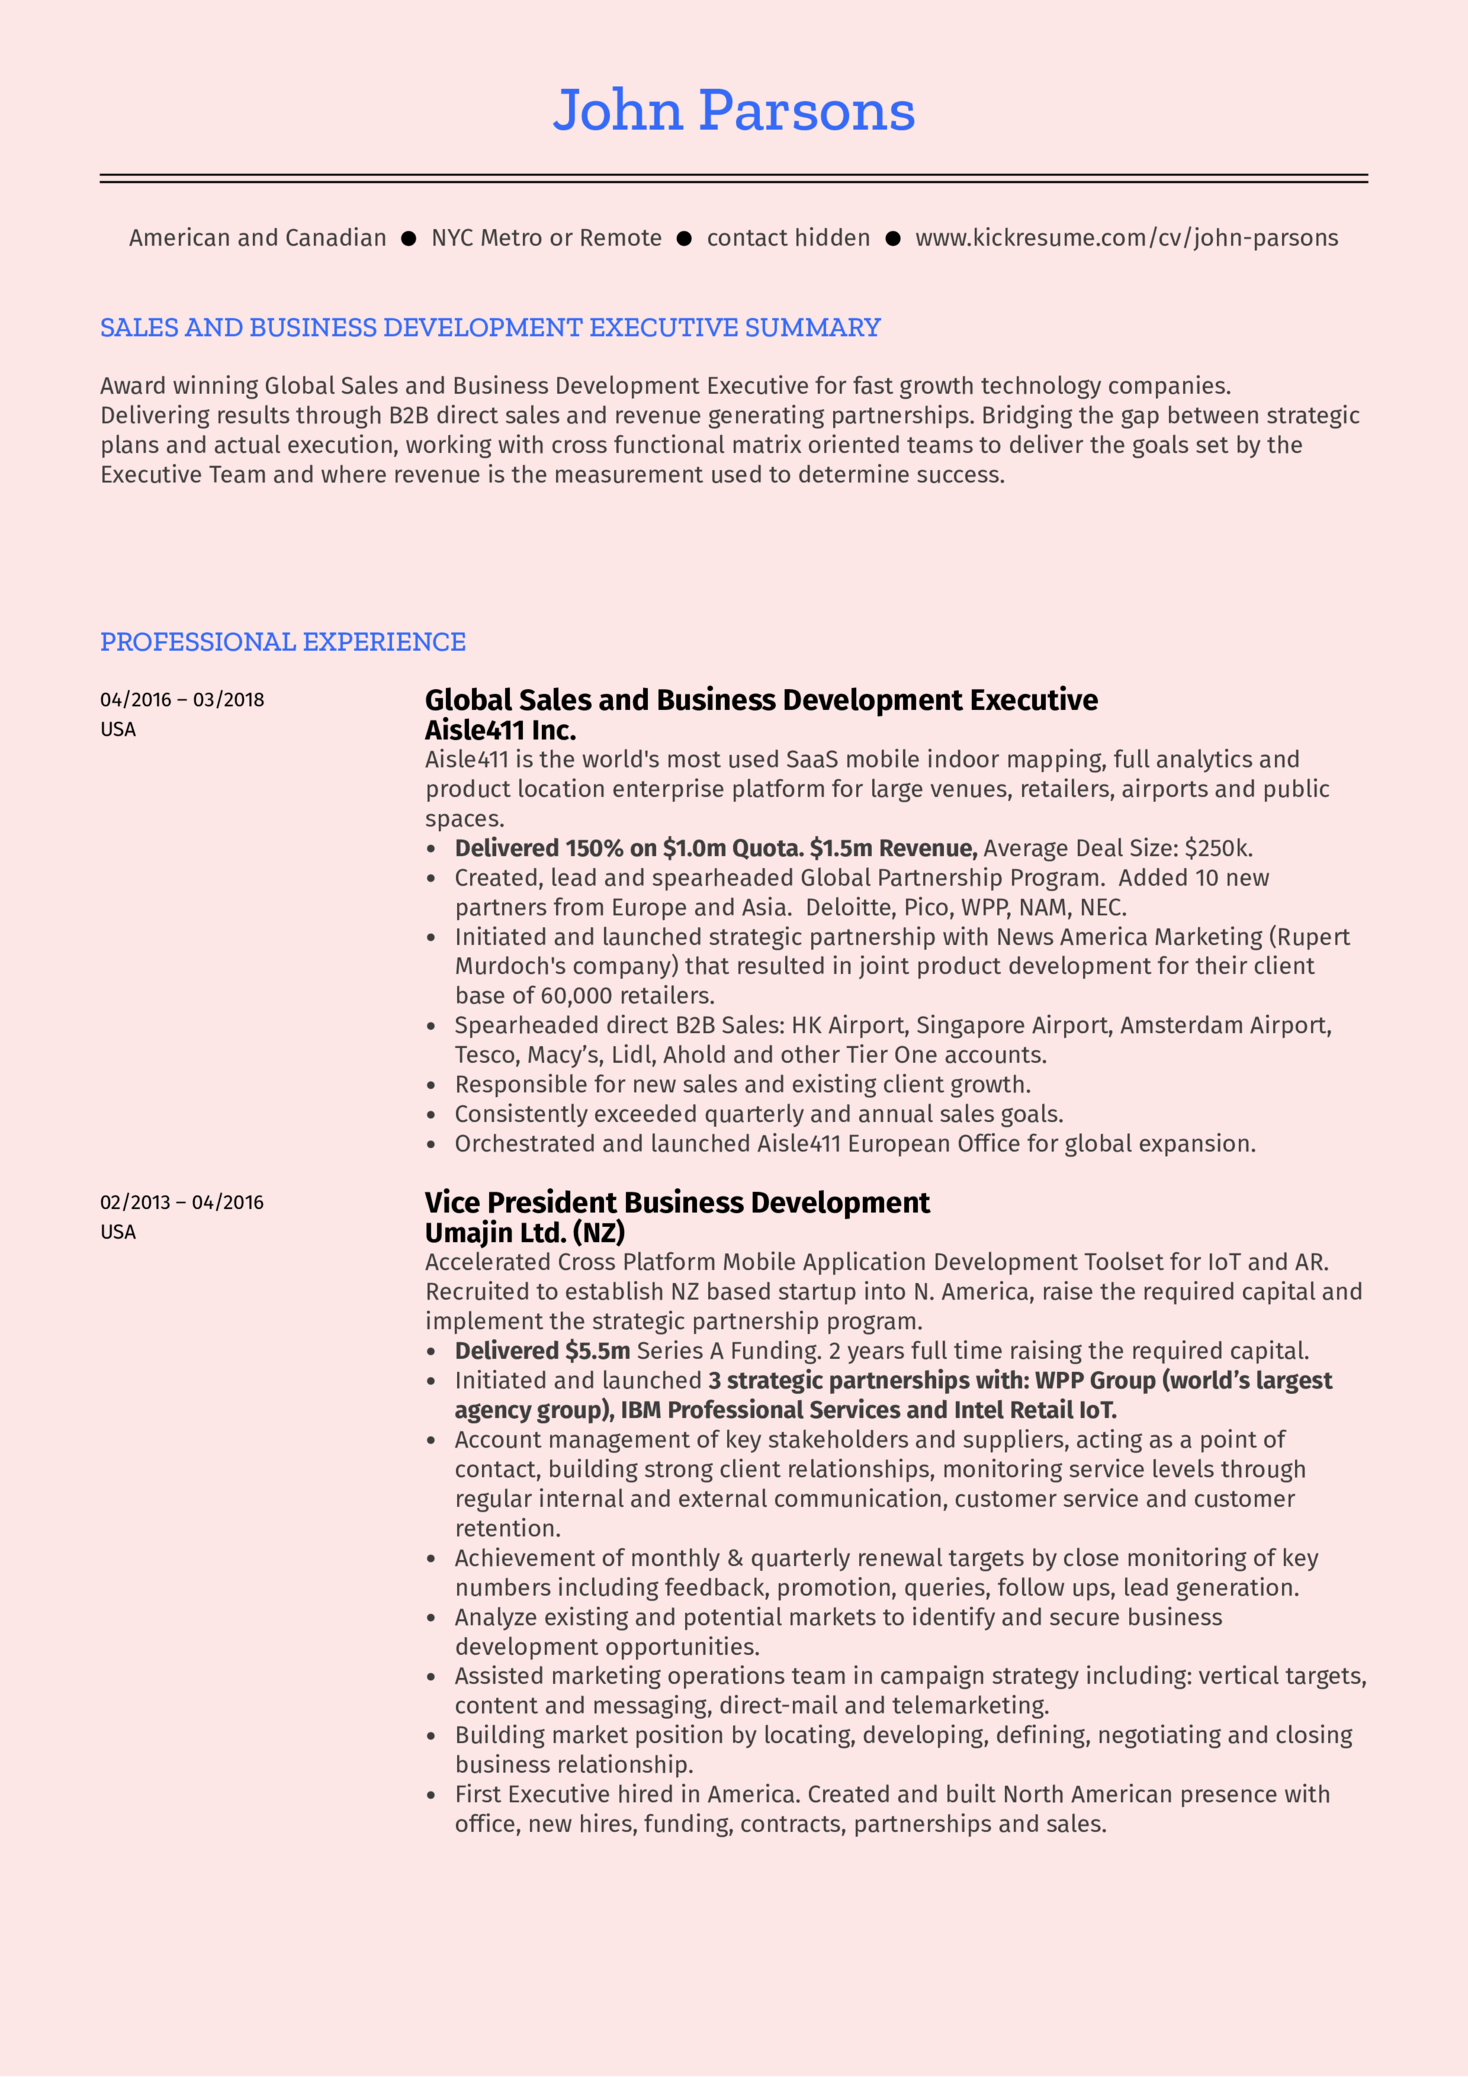 Business development executive resume sample | Resume samples ...